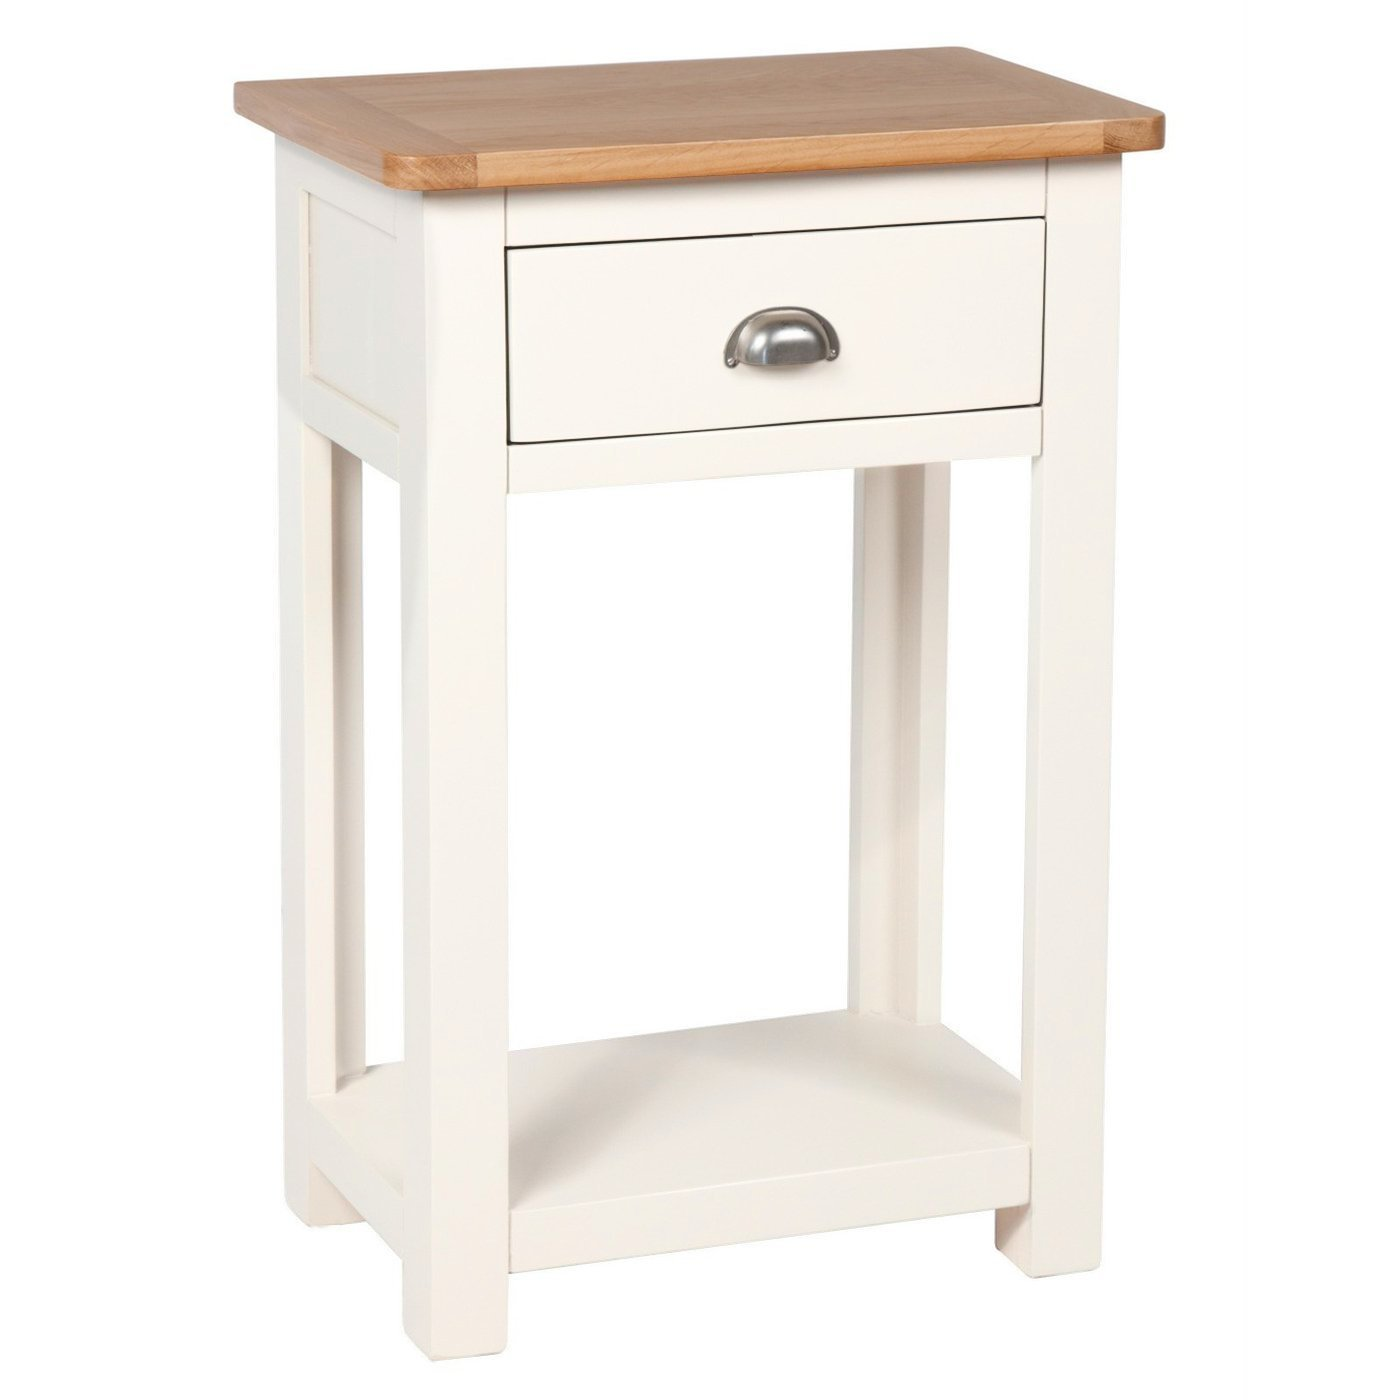 drawer table item width transitional furniture threshold transitionaltelephone two stanley products height trim telephone